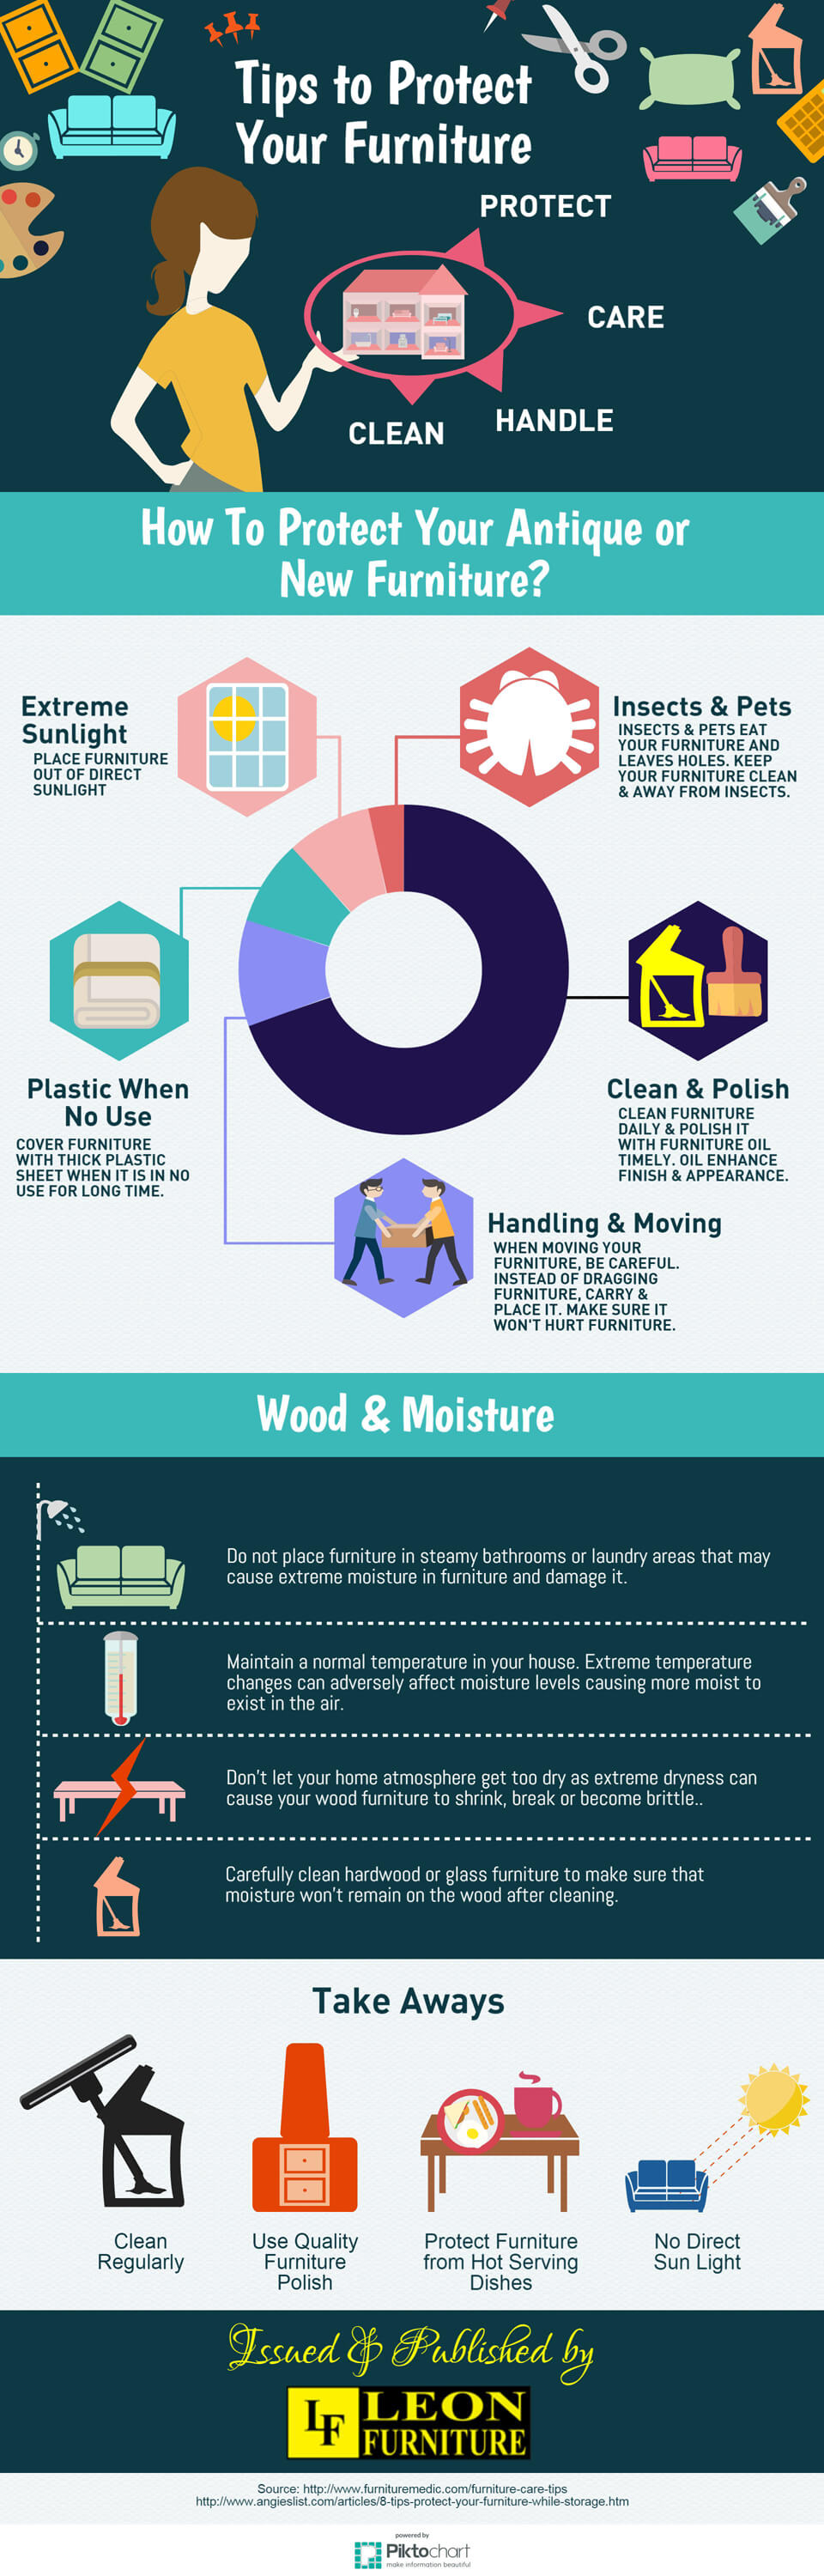 tips-to-protect-your-furniture-infographic